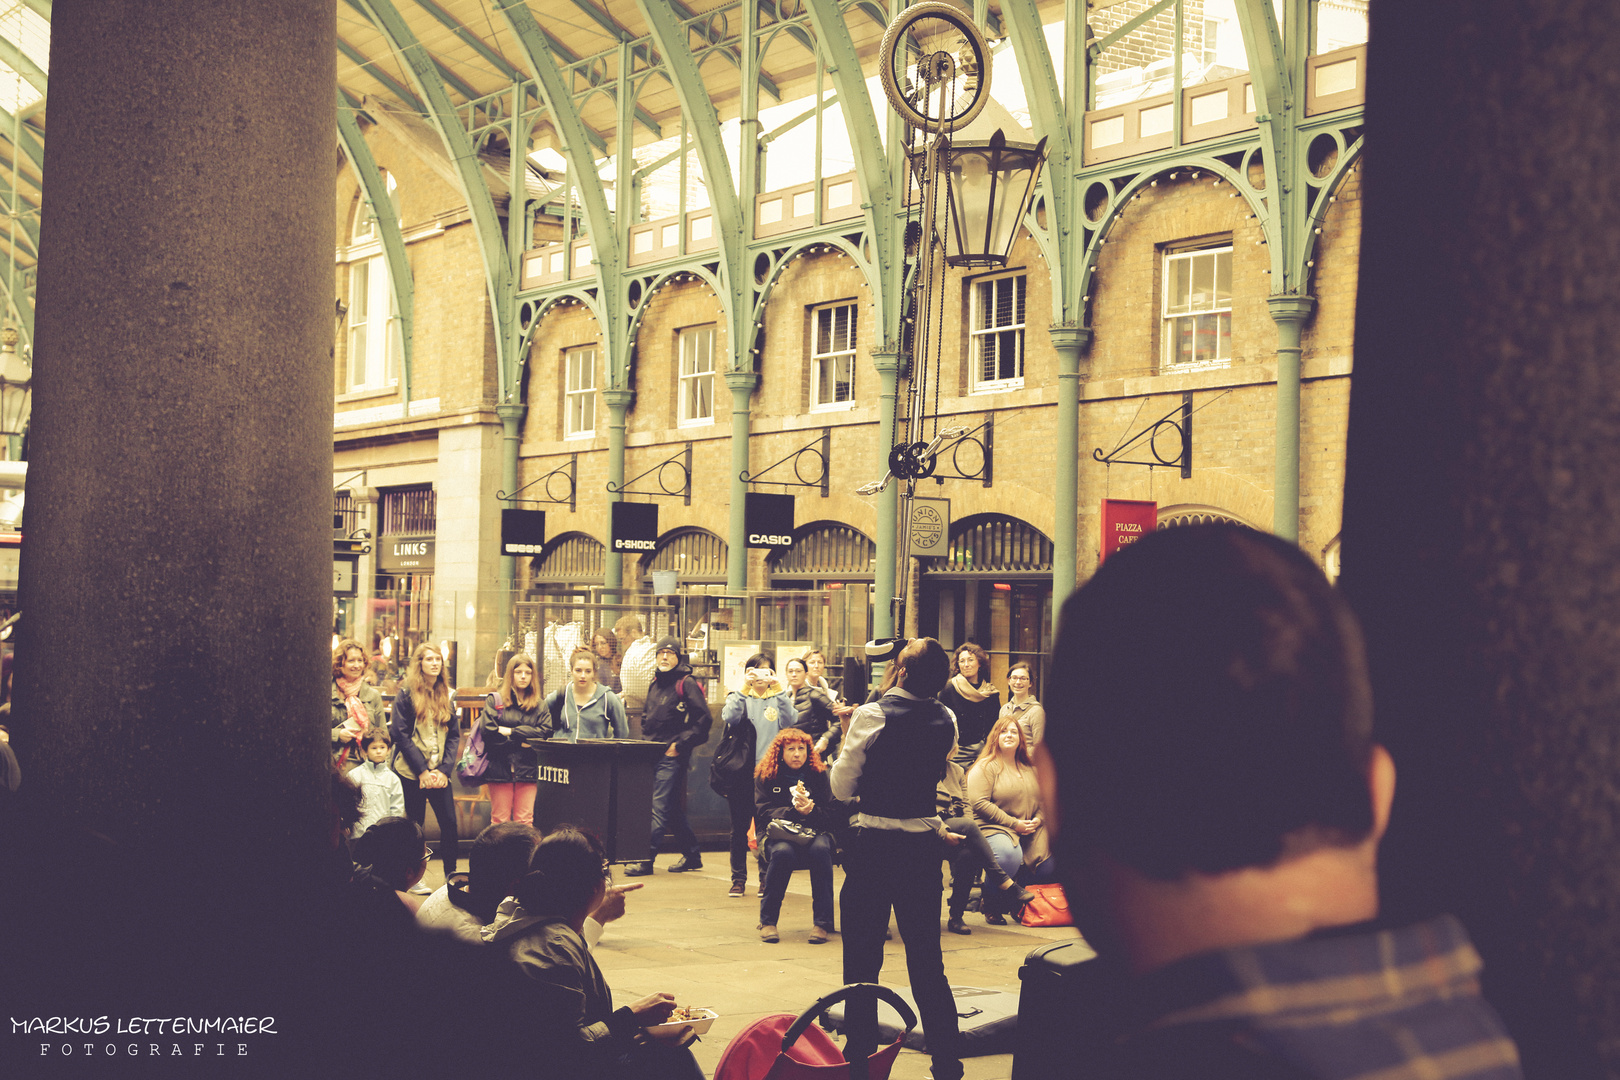 Entertainment at the Covent Garden Market